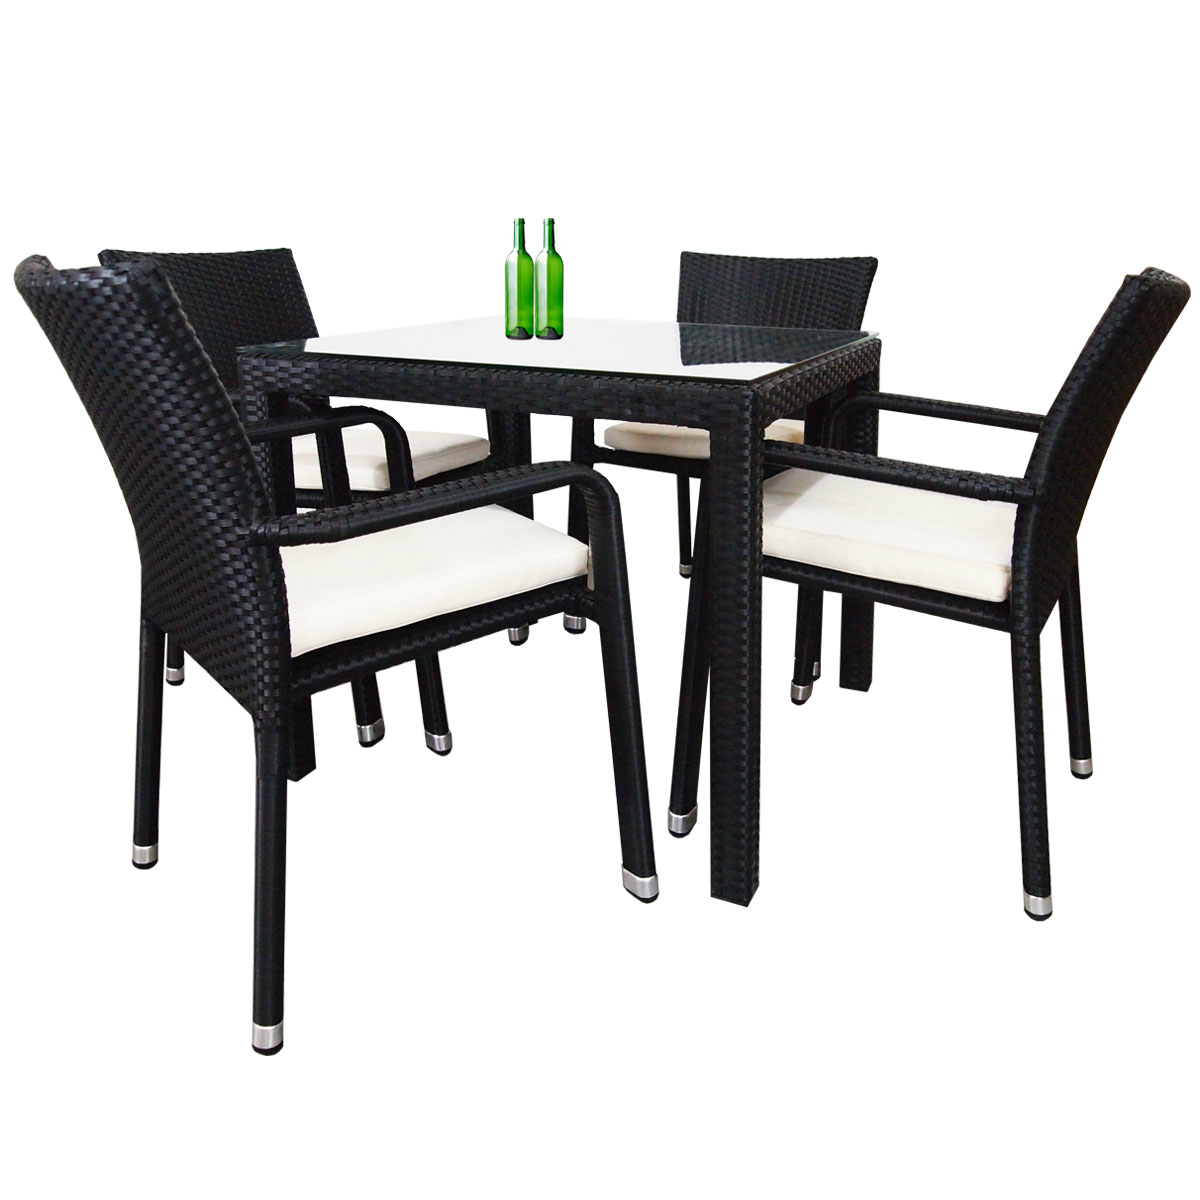 palm dining set with white cushions image 1